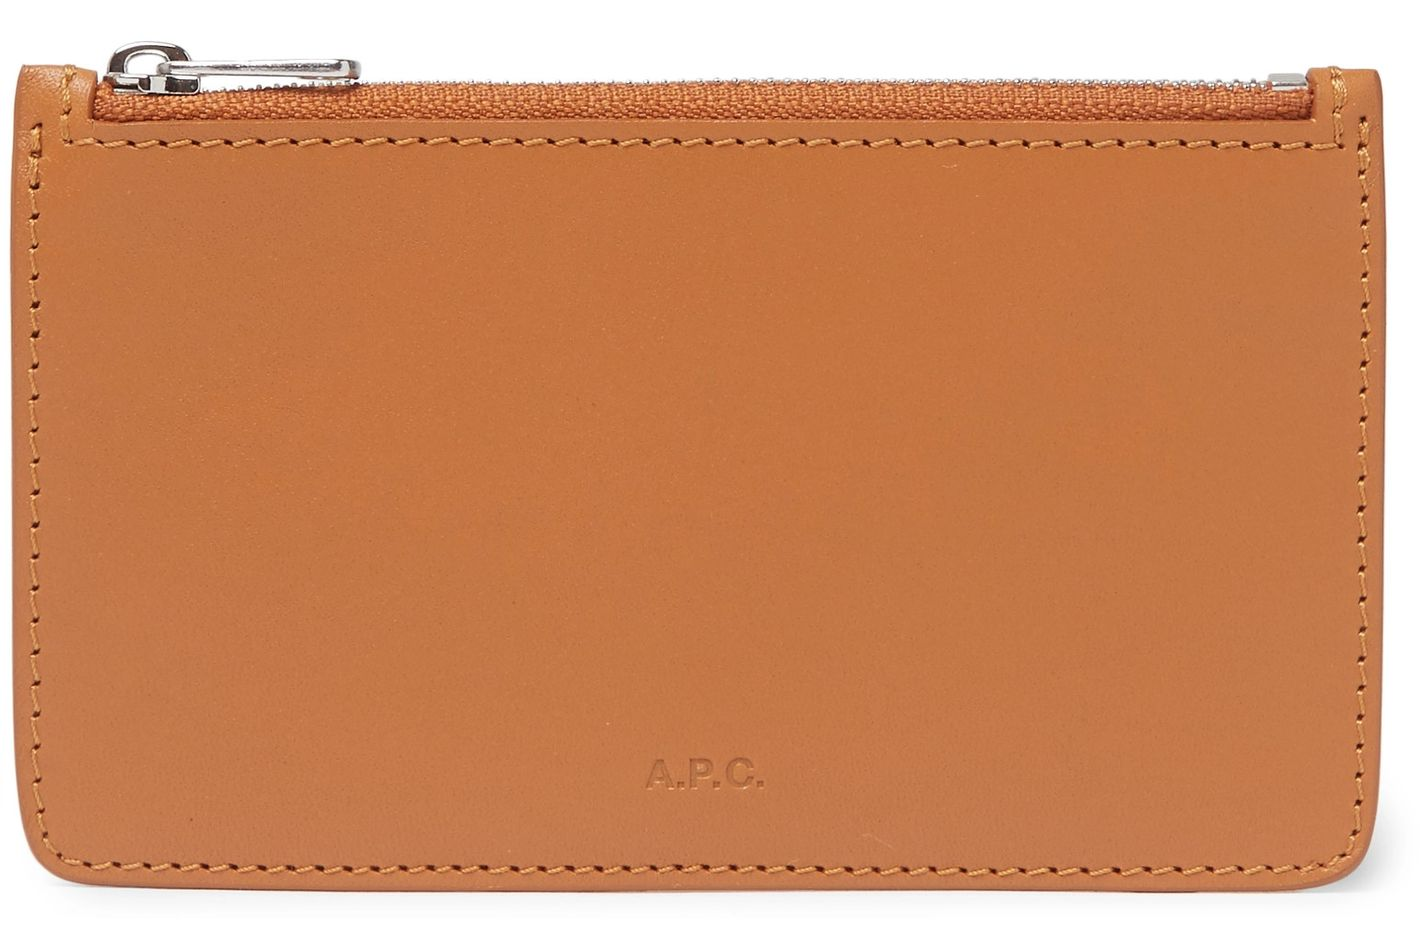 A.P.C. Walter Leather Zipped Cardholder